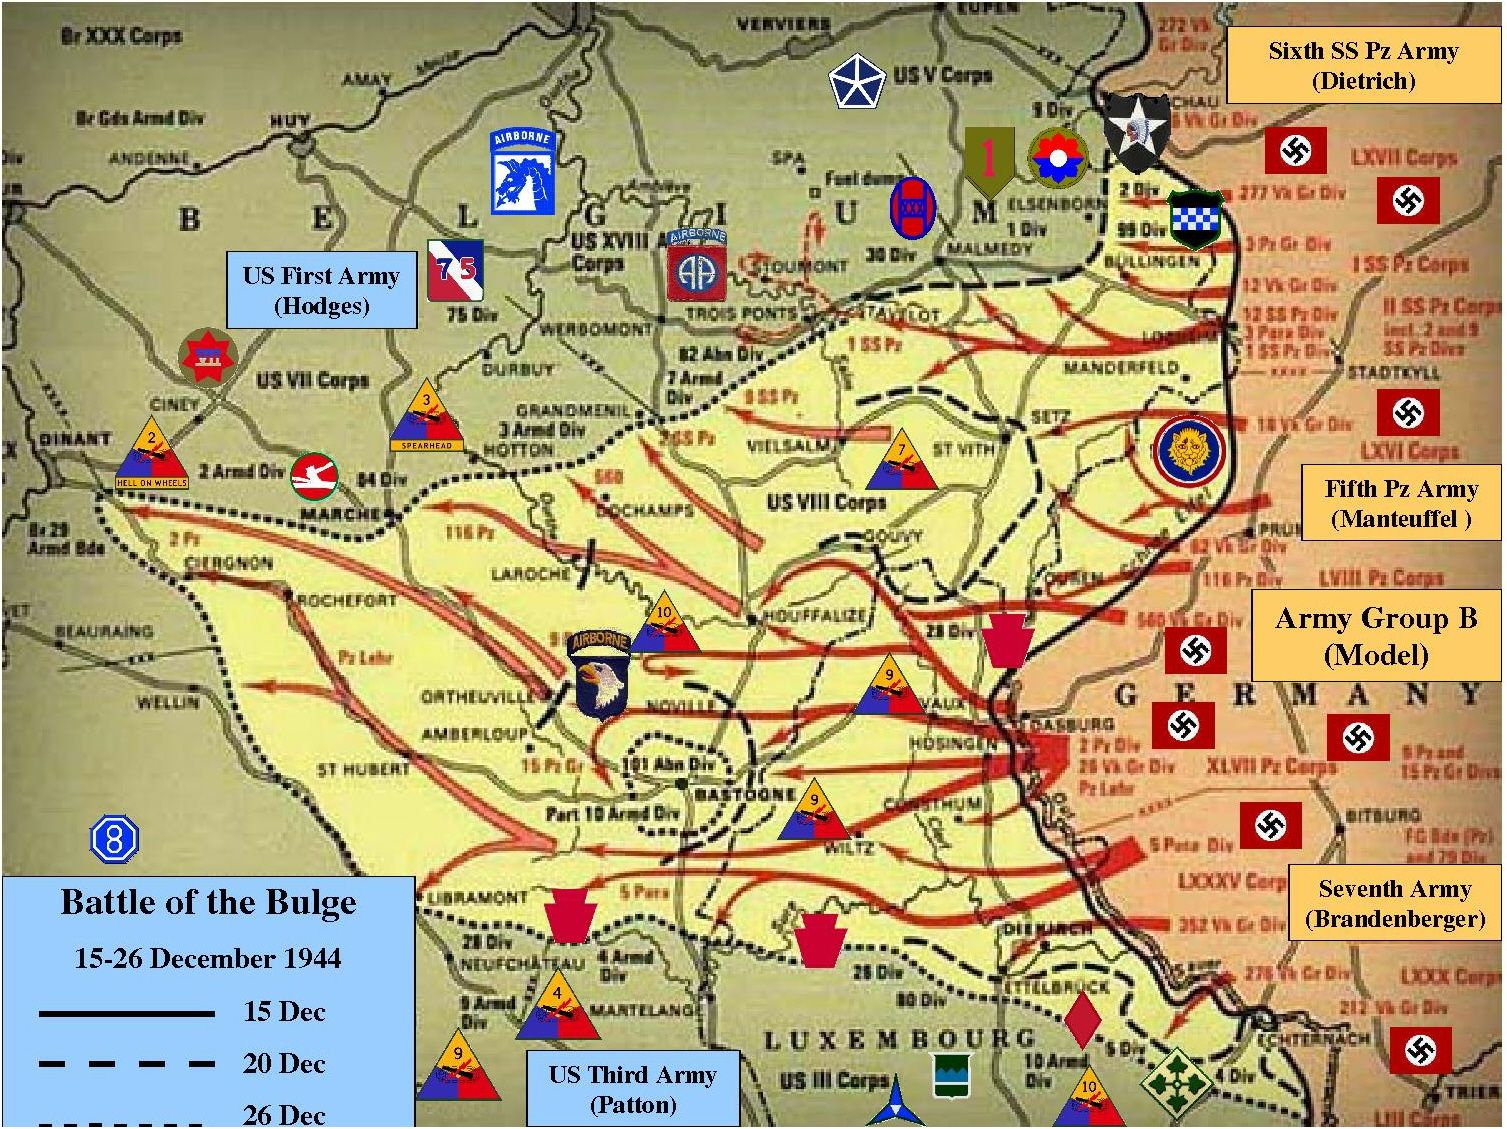 Map battle of the bulge battle of the bulge december 16 26 1944 map battle of the bulge battle of the bulge december 16 26 1944 belgium gumiabroncs Gallery